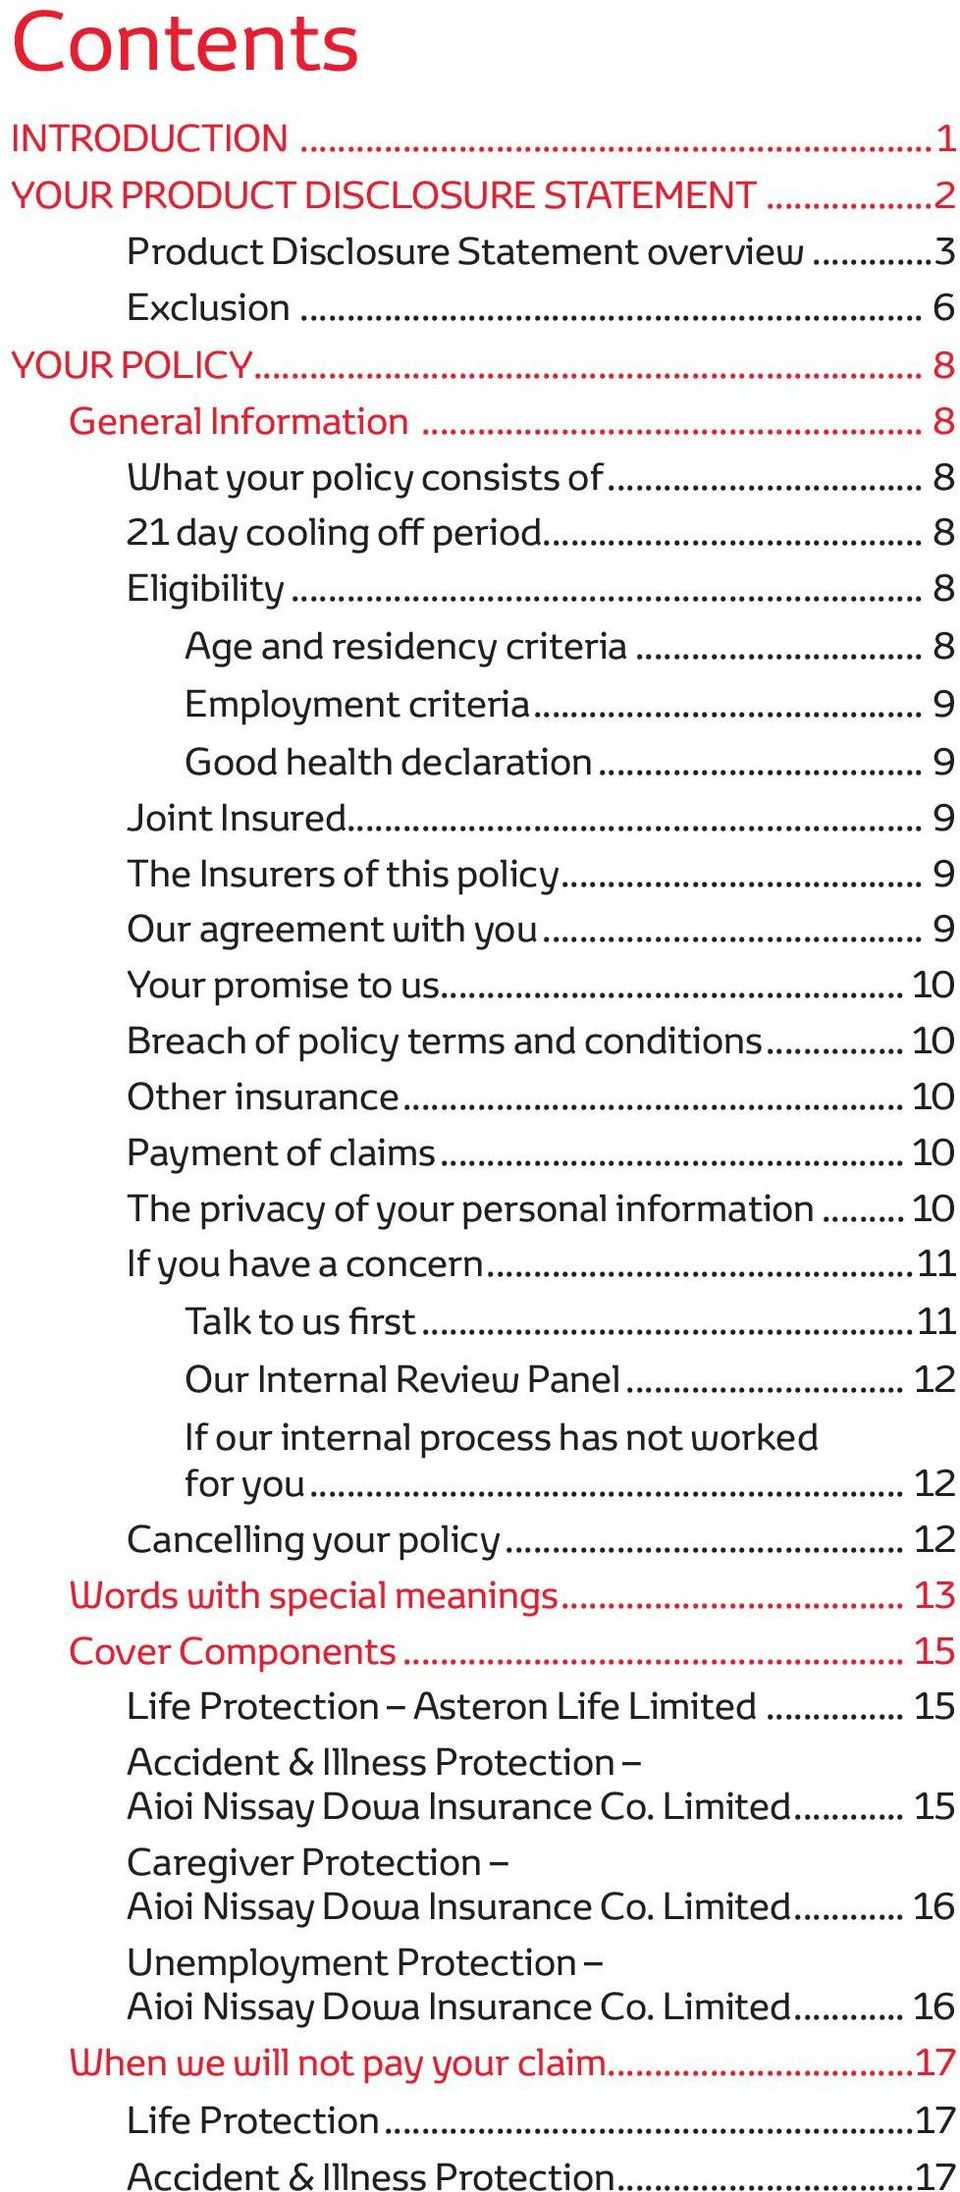 .. 9 Our agreement with you... 9 Your promise to us... 10 Breach of policy terms and conditions... 10 Other insurance... 10 Payment of claims... 10 The privacy of your personal information.